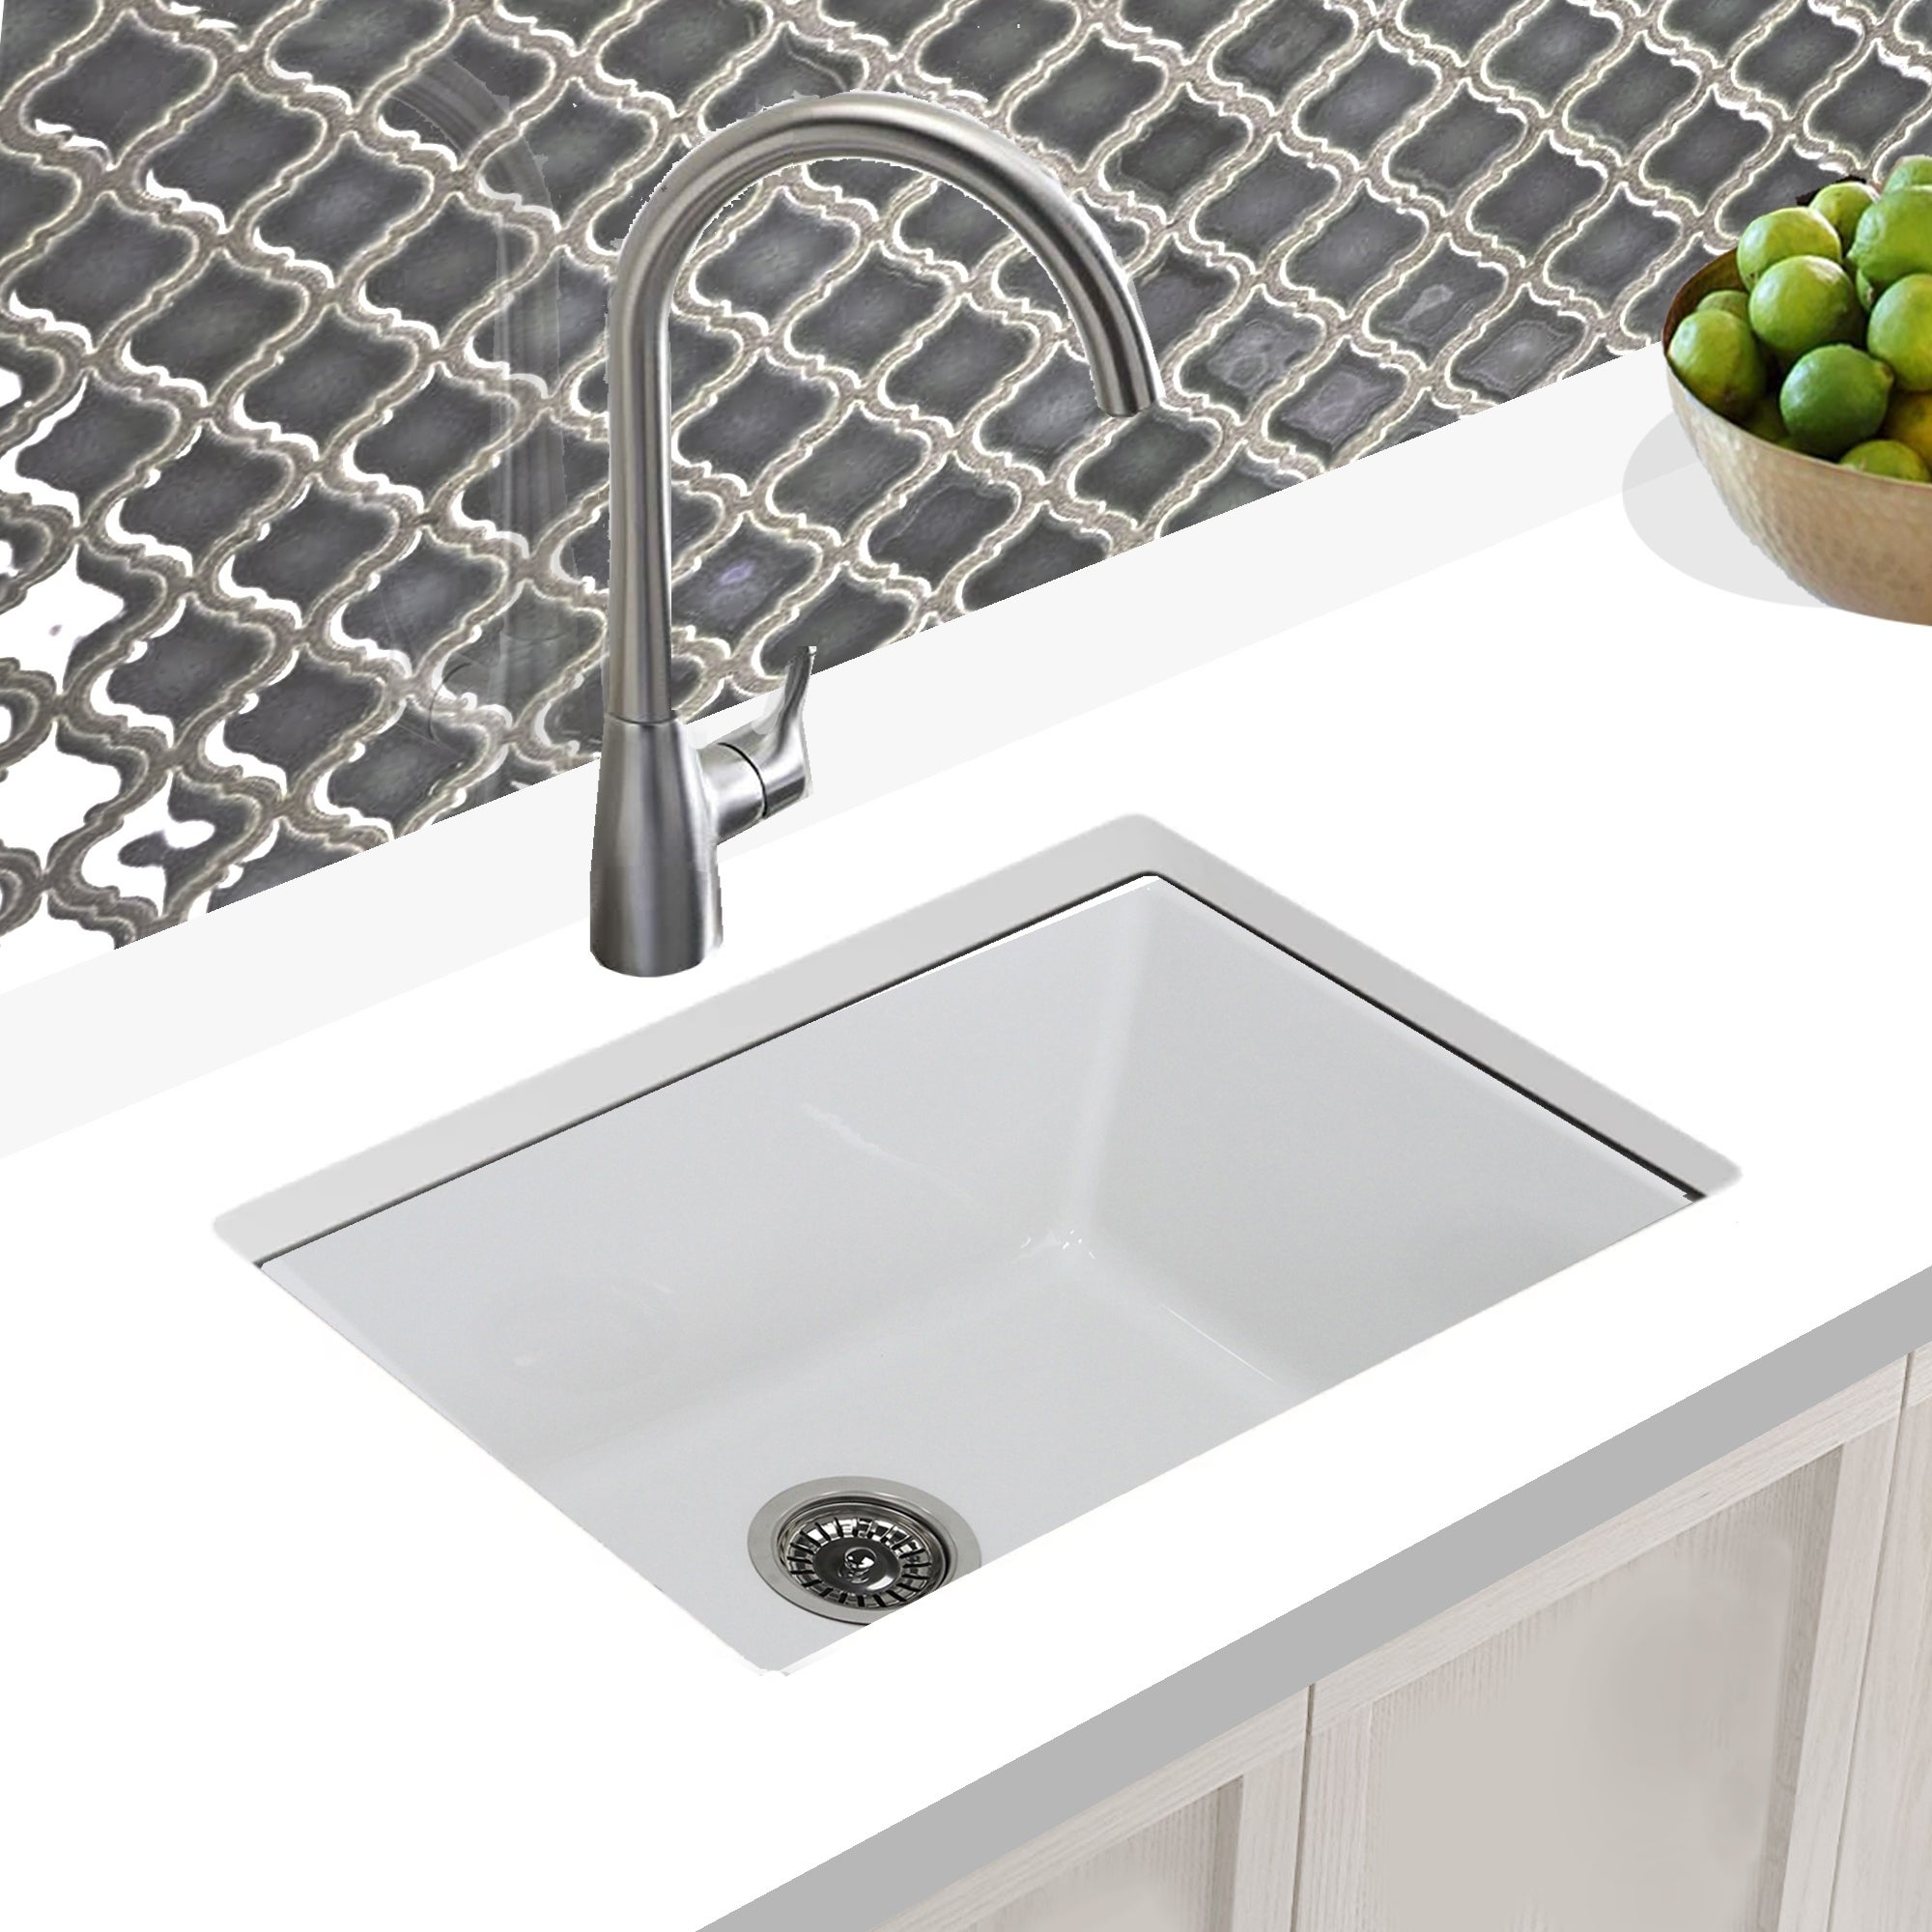 Shop Highpoint Collection 24 Inch Undermount Fireclay Kitchen Or Laundry Sink Made In Italy 24 X 18 X10 Inches Overstock 28669999